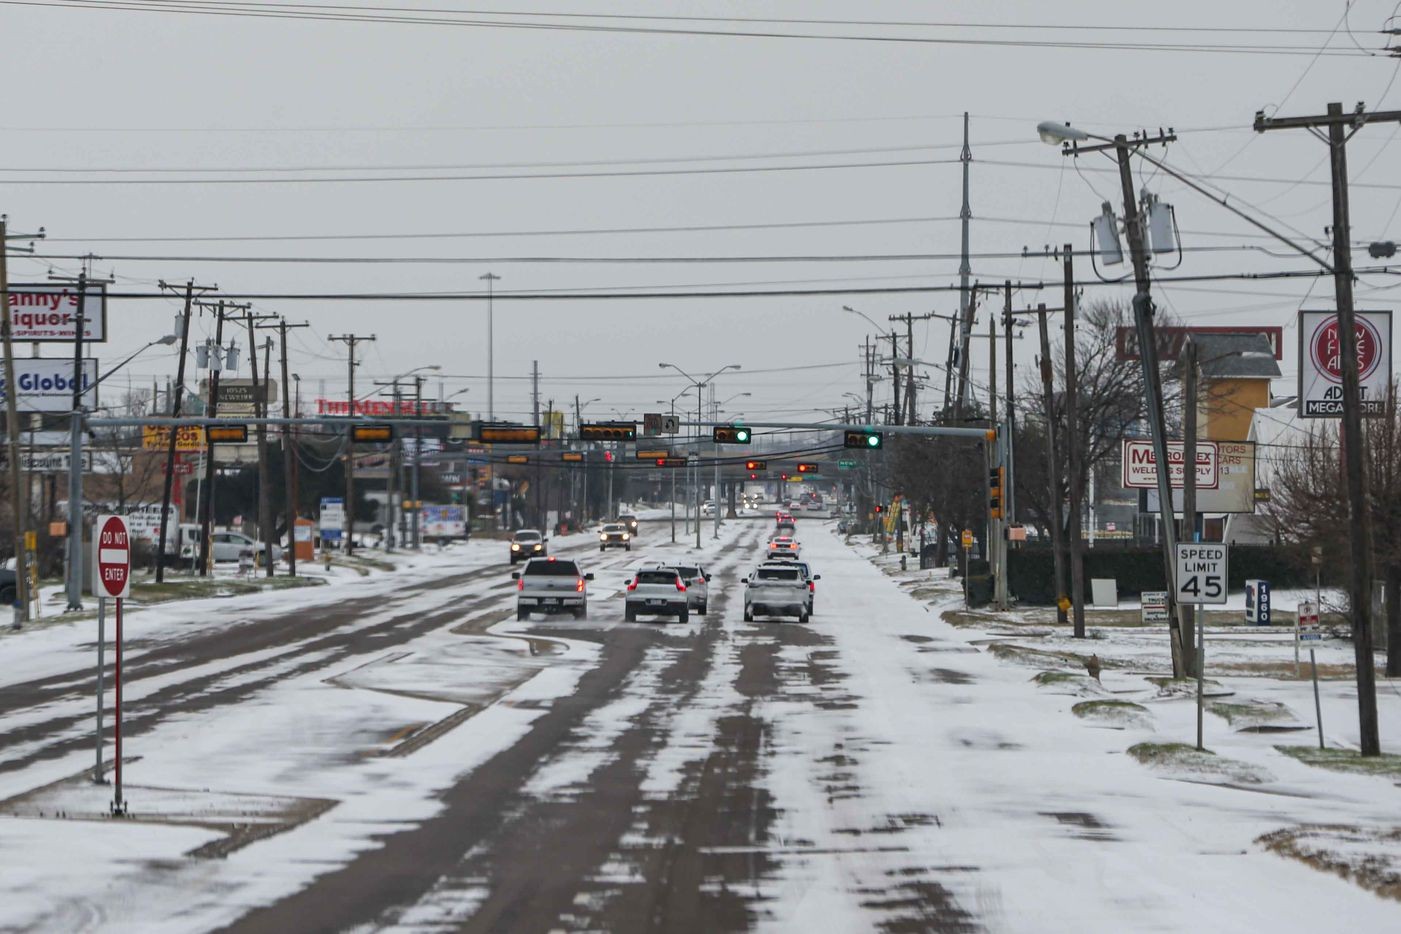 Light traffic on TX-12 Loop Northwest as it continues to snow and temperatures keep dropping in Dallas on Sunday, February 24, 2021.